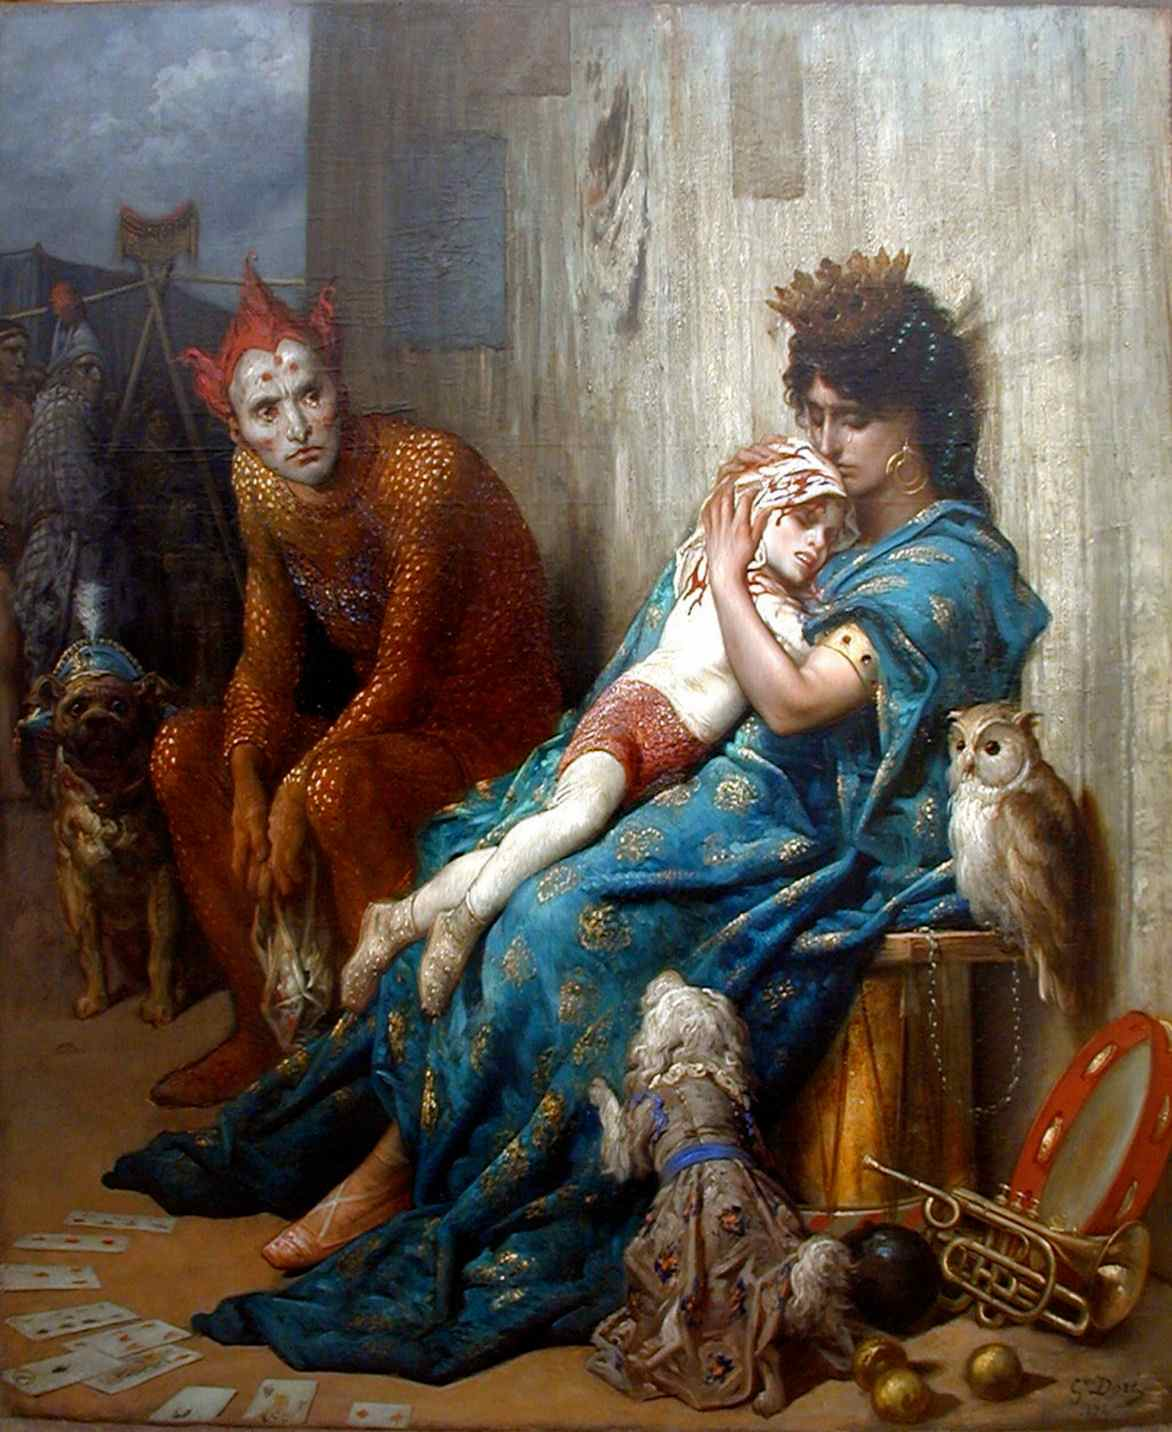 Les Saltimbanques (The Entertainers), Gustave Dore